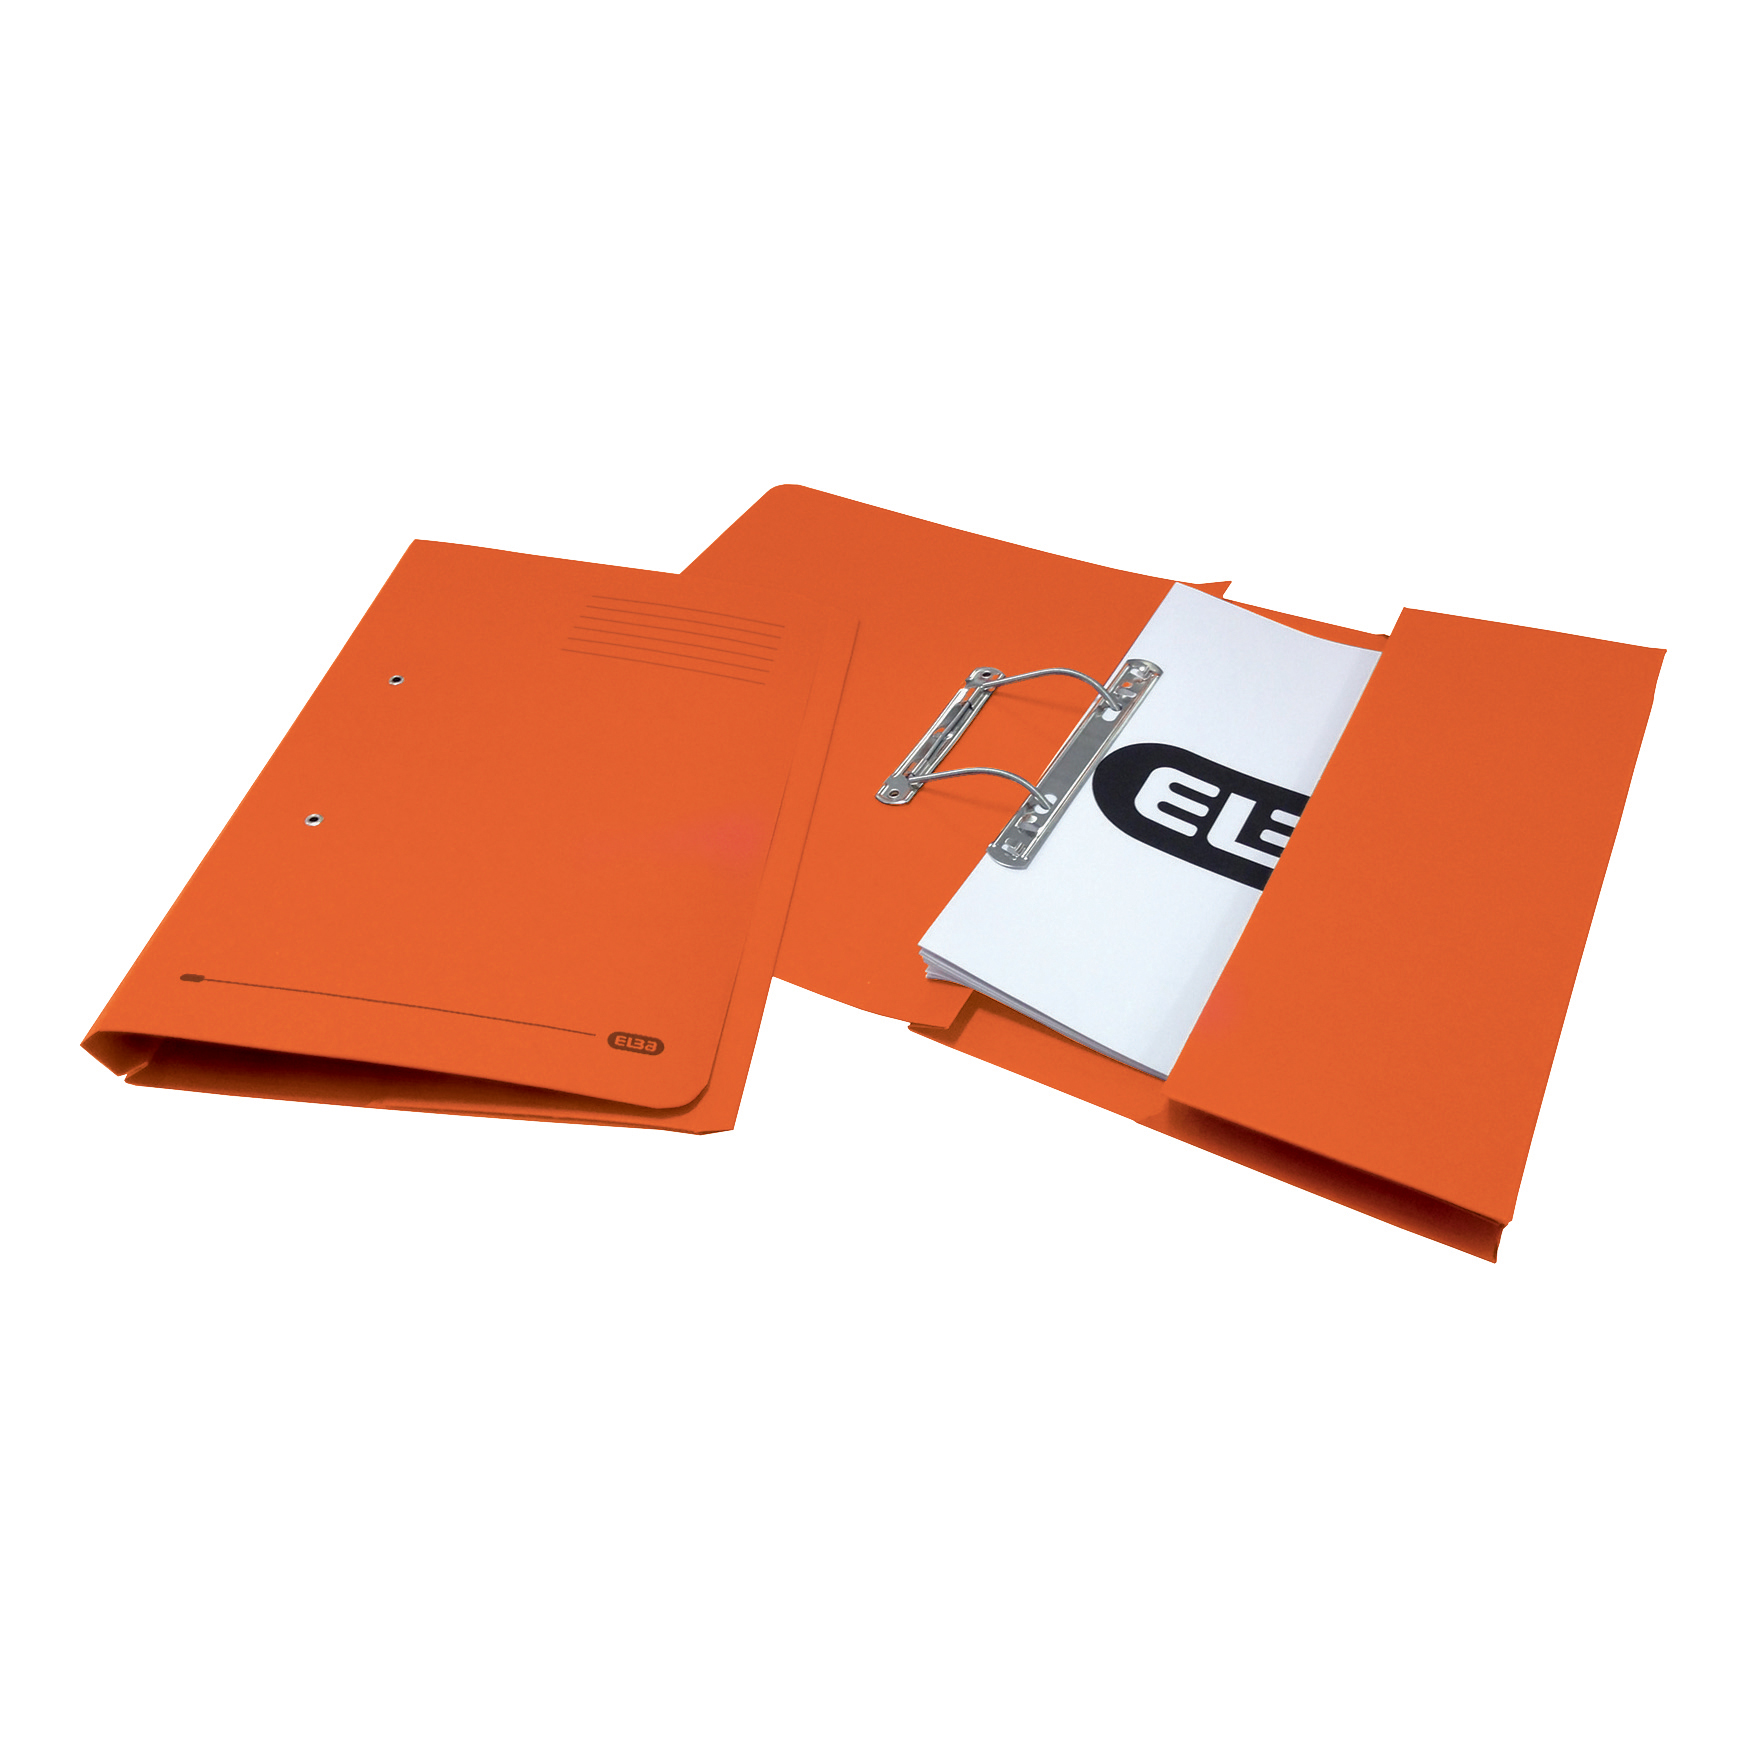 Elba StrongLine Transfer Spring File Recycled 320gsm Foolscap Orange Ref 100090148 [Pack 25] [REDEMPTION]